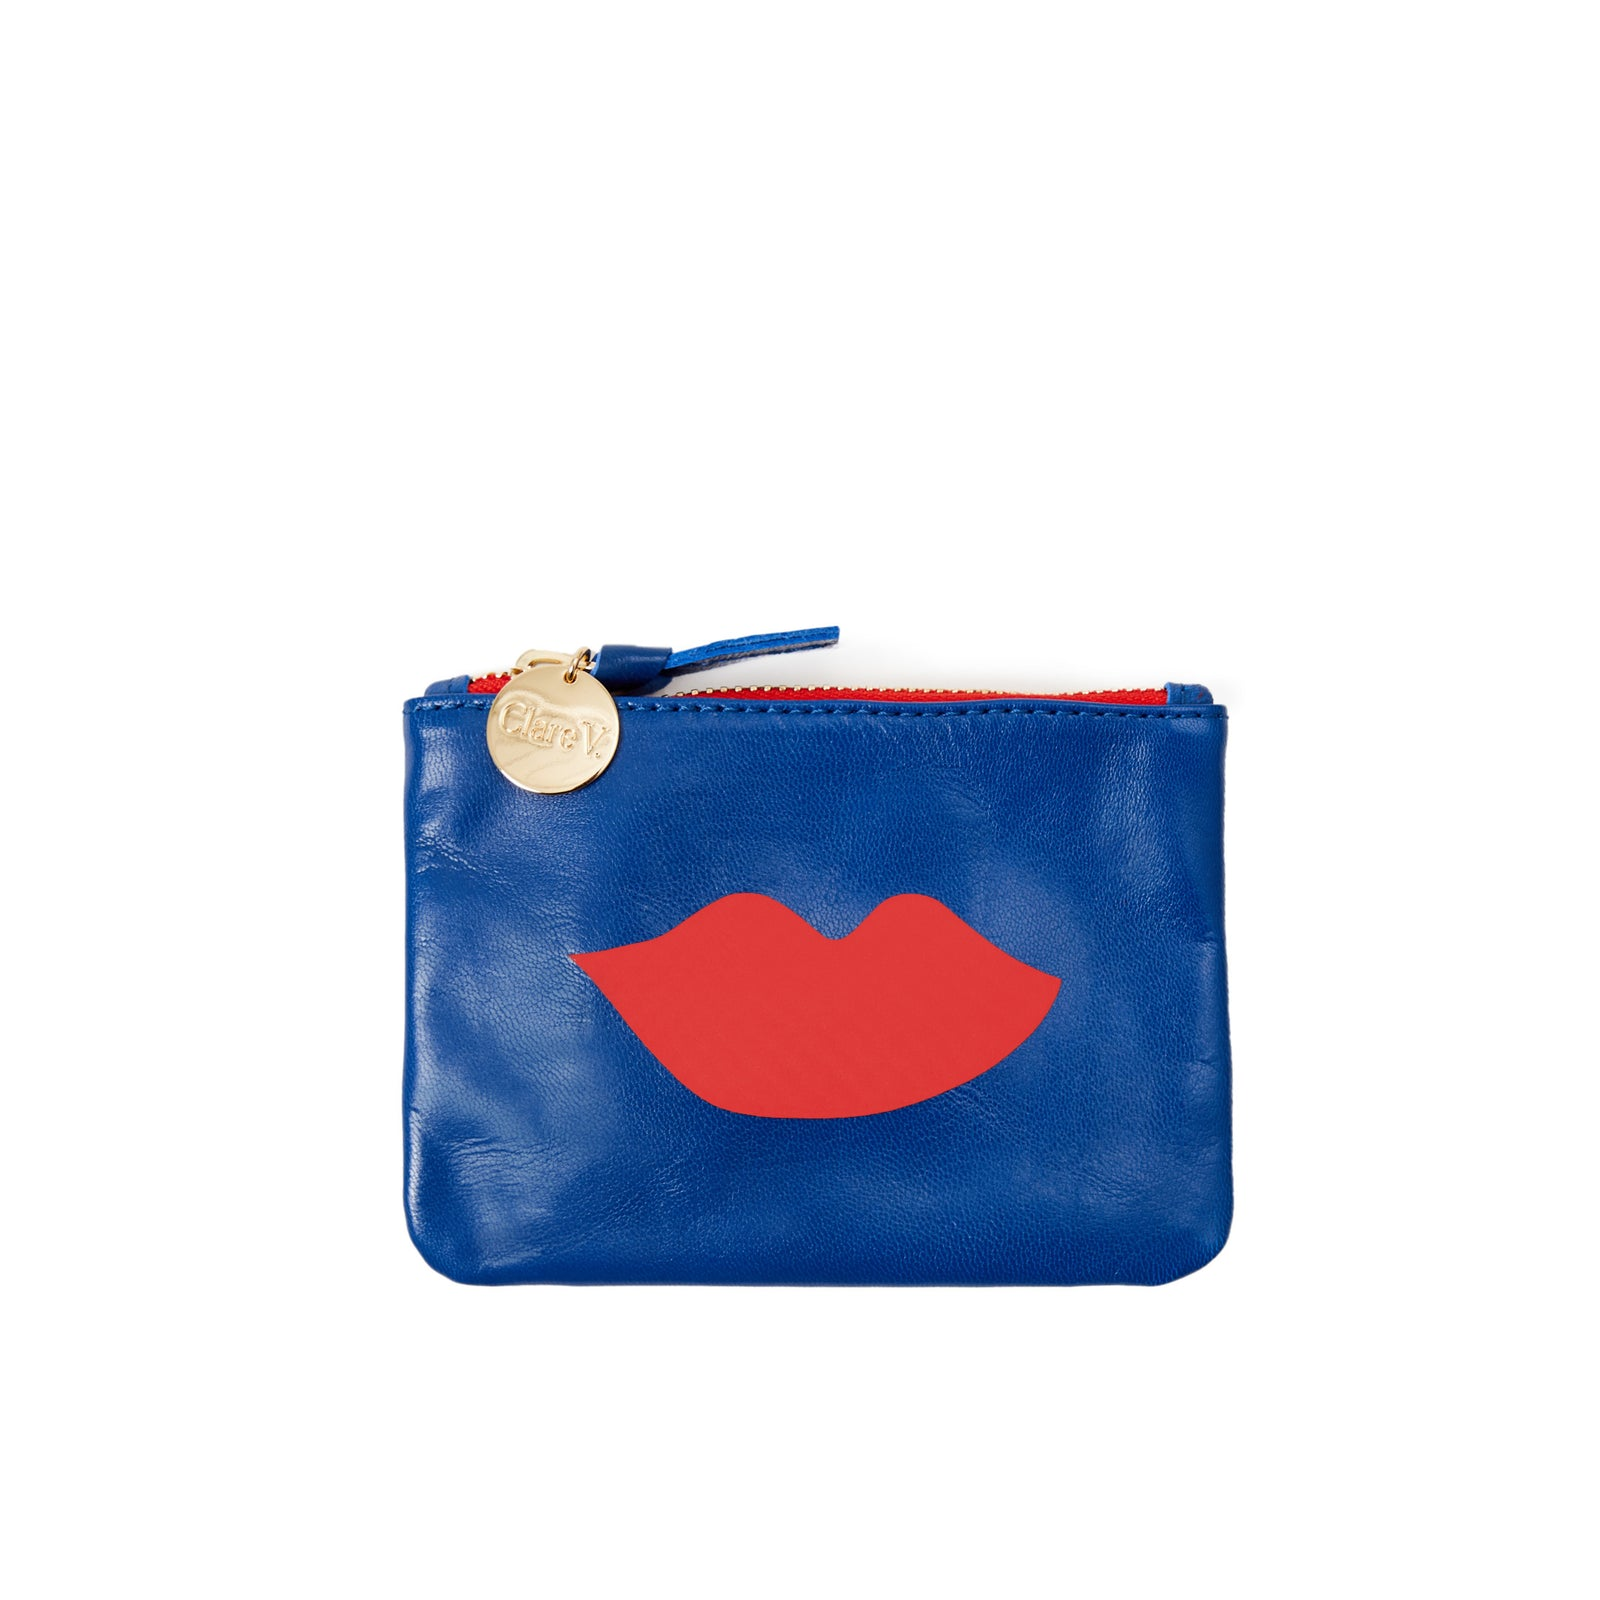 Nova and Perruche with Lips Coin Clutch - Front